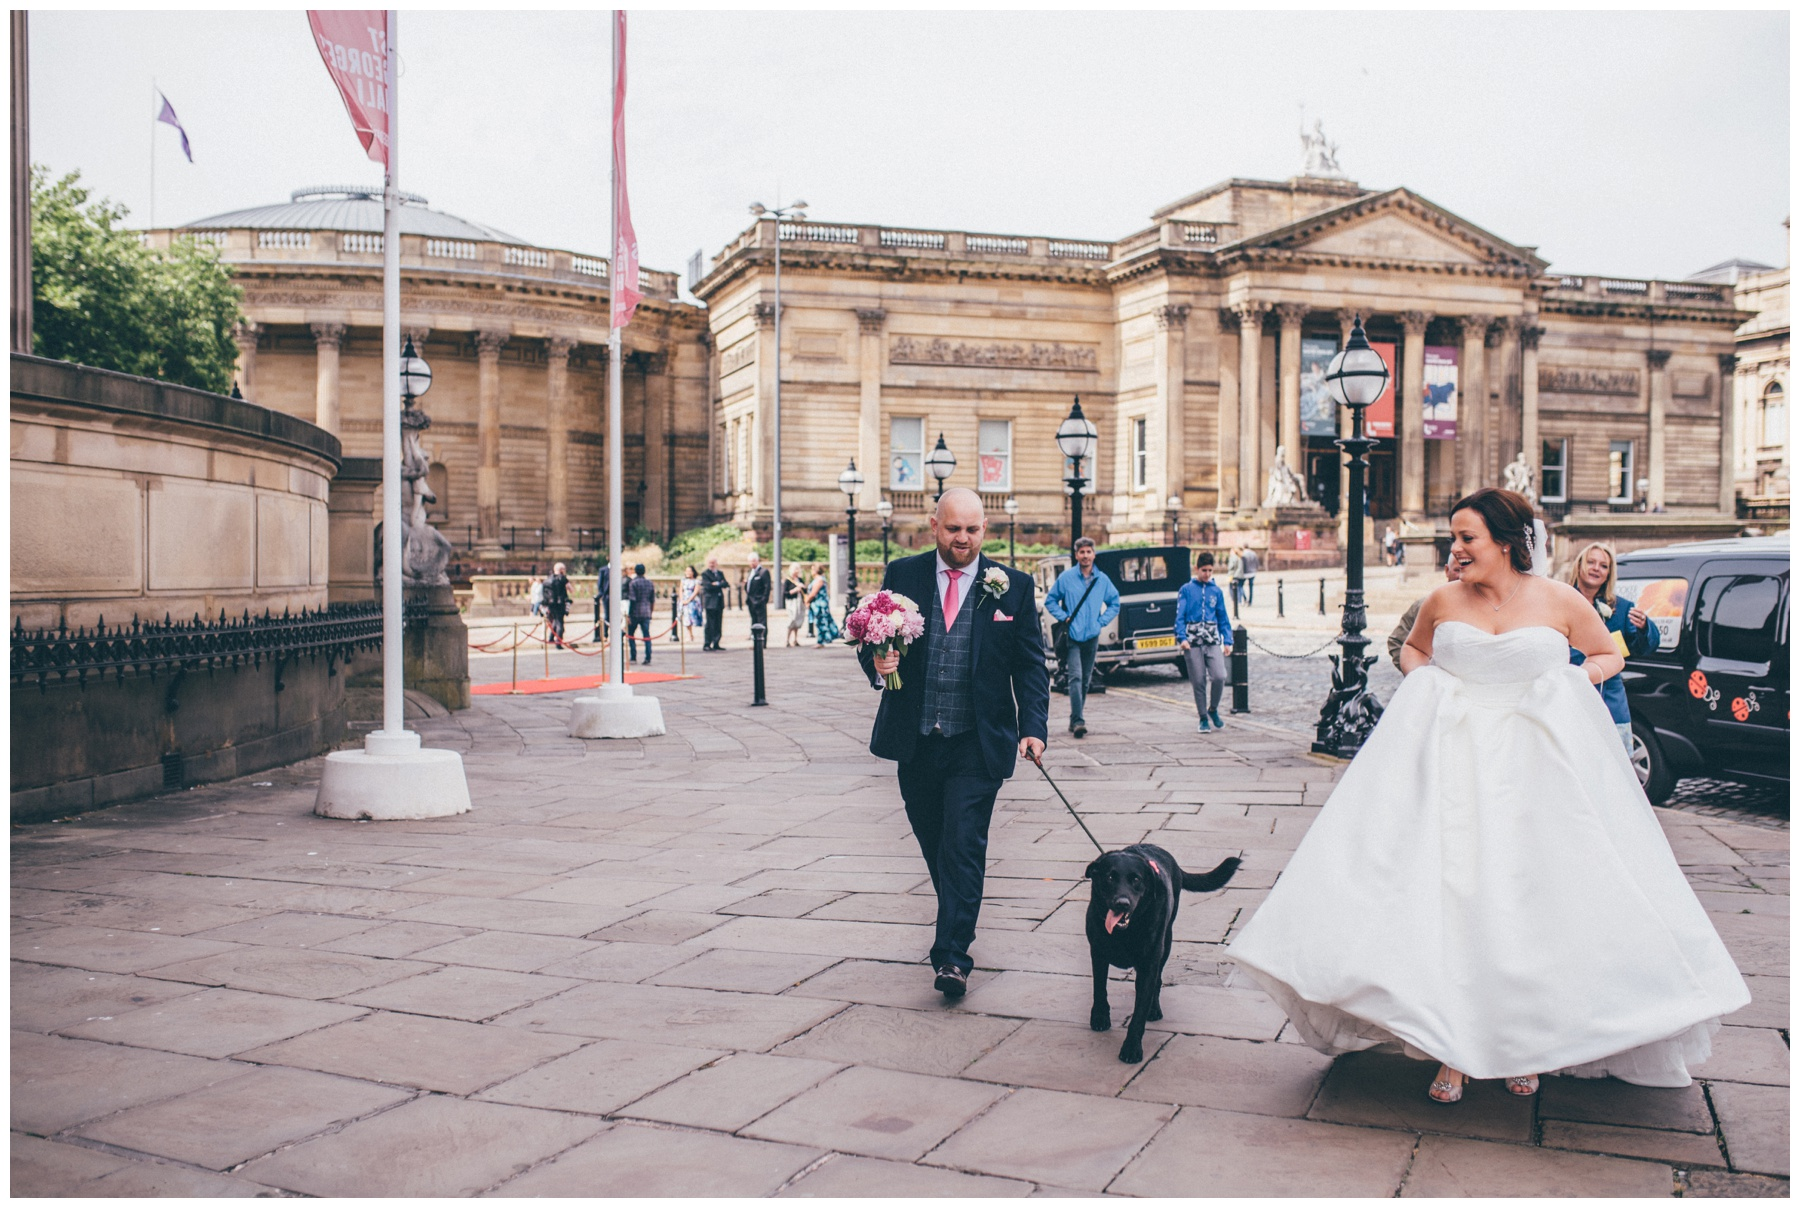 New husband and wife walk their dog in Liverpool city centre just after their wedding.